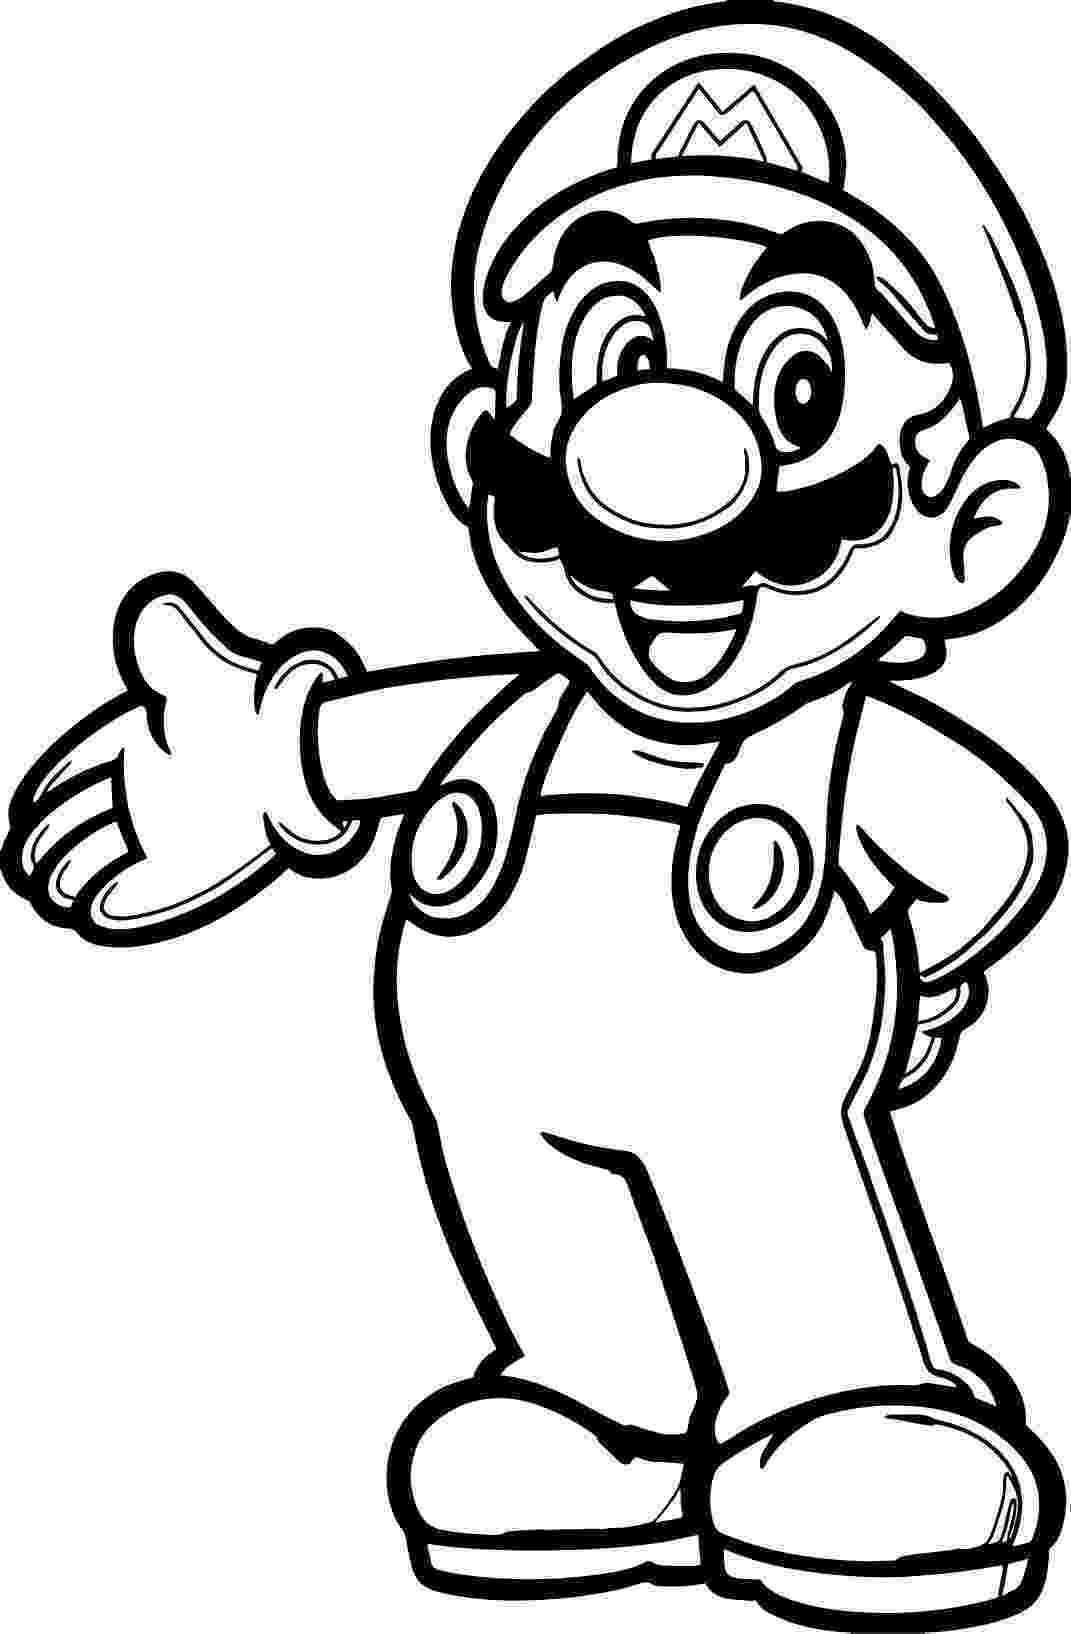 super mario bros printable coloring pages super mario bros 112 video games printable coloring pages mario coloring bros printable super pages